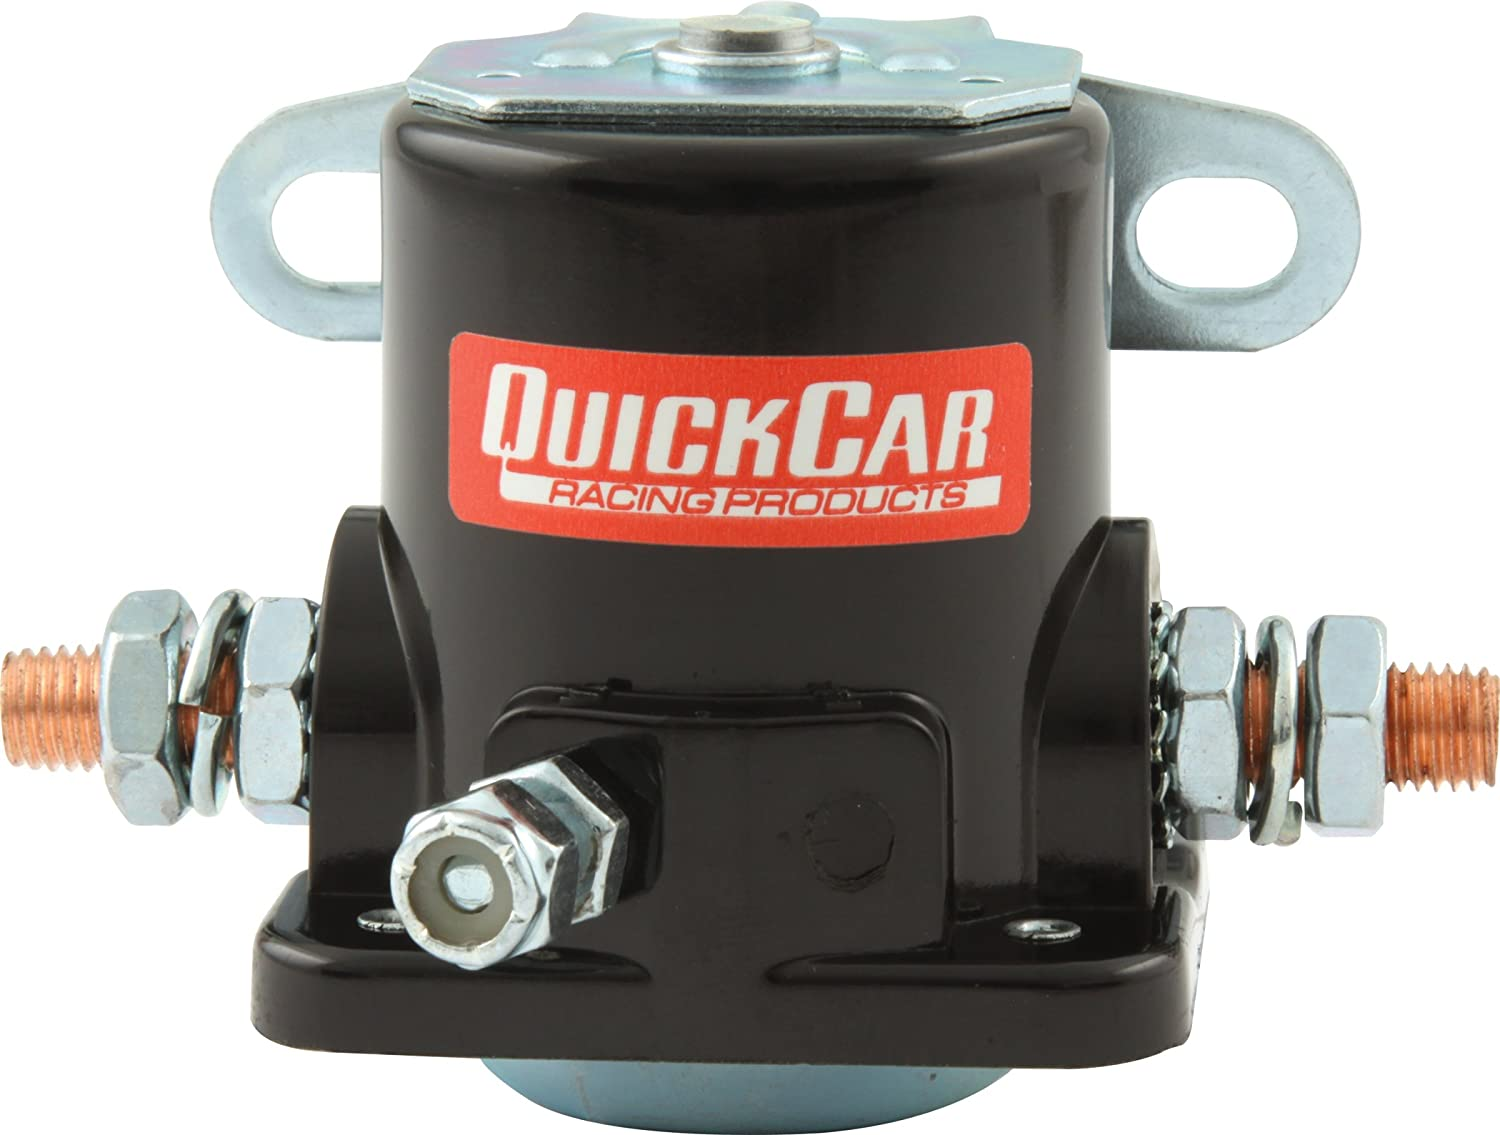 QuickCar Racing Products 50-430 Heavy Duty Starter Solenoid